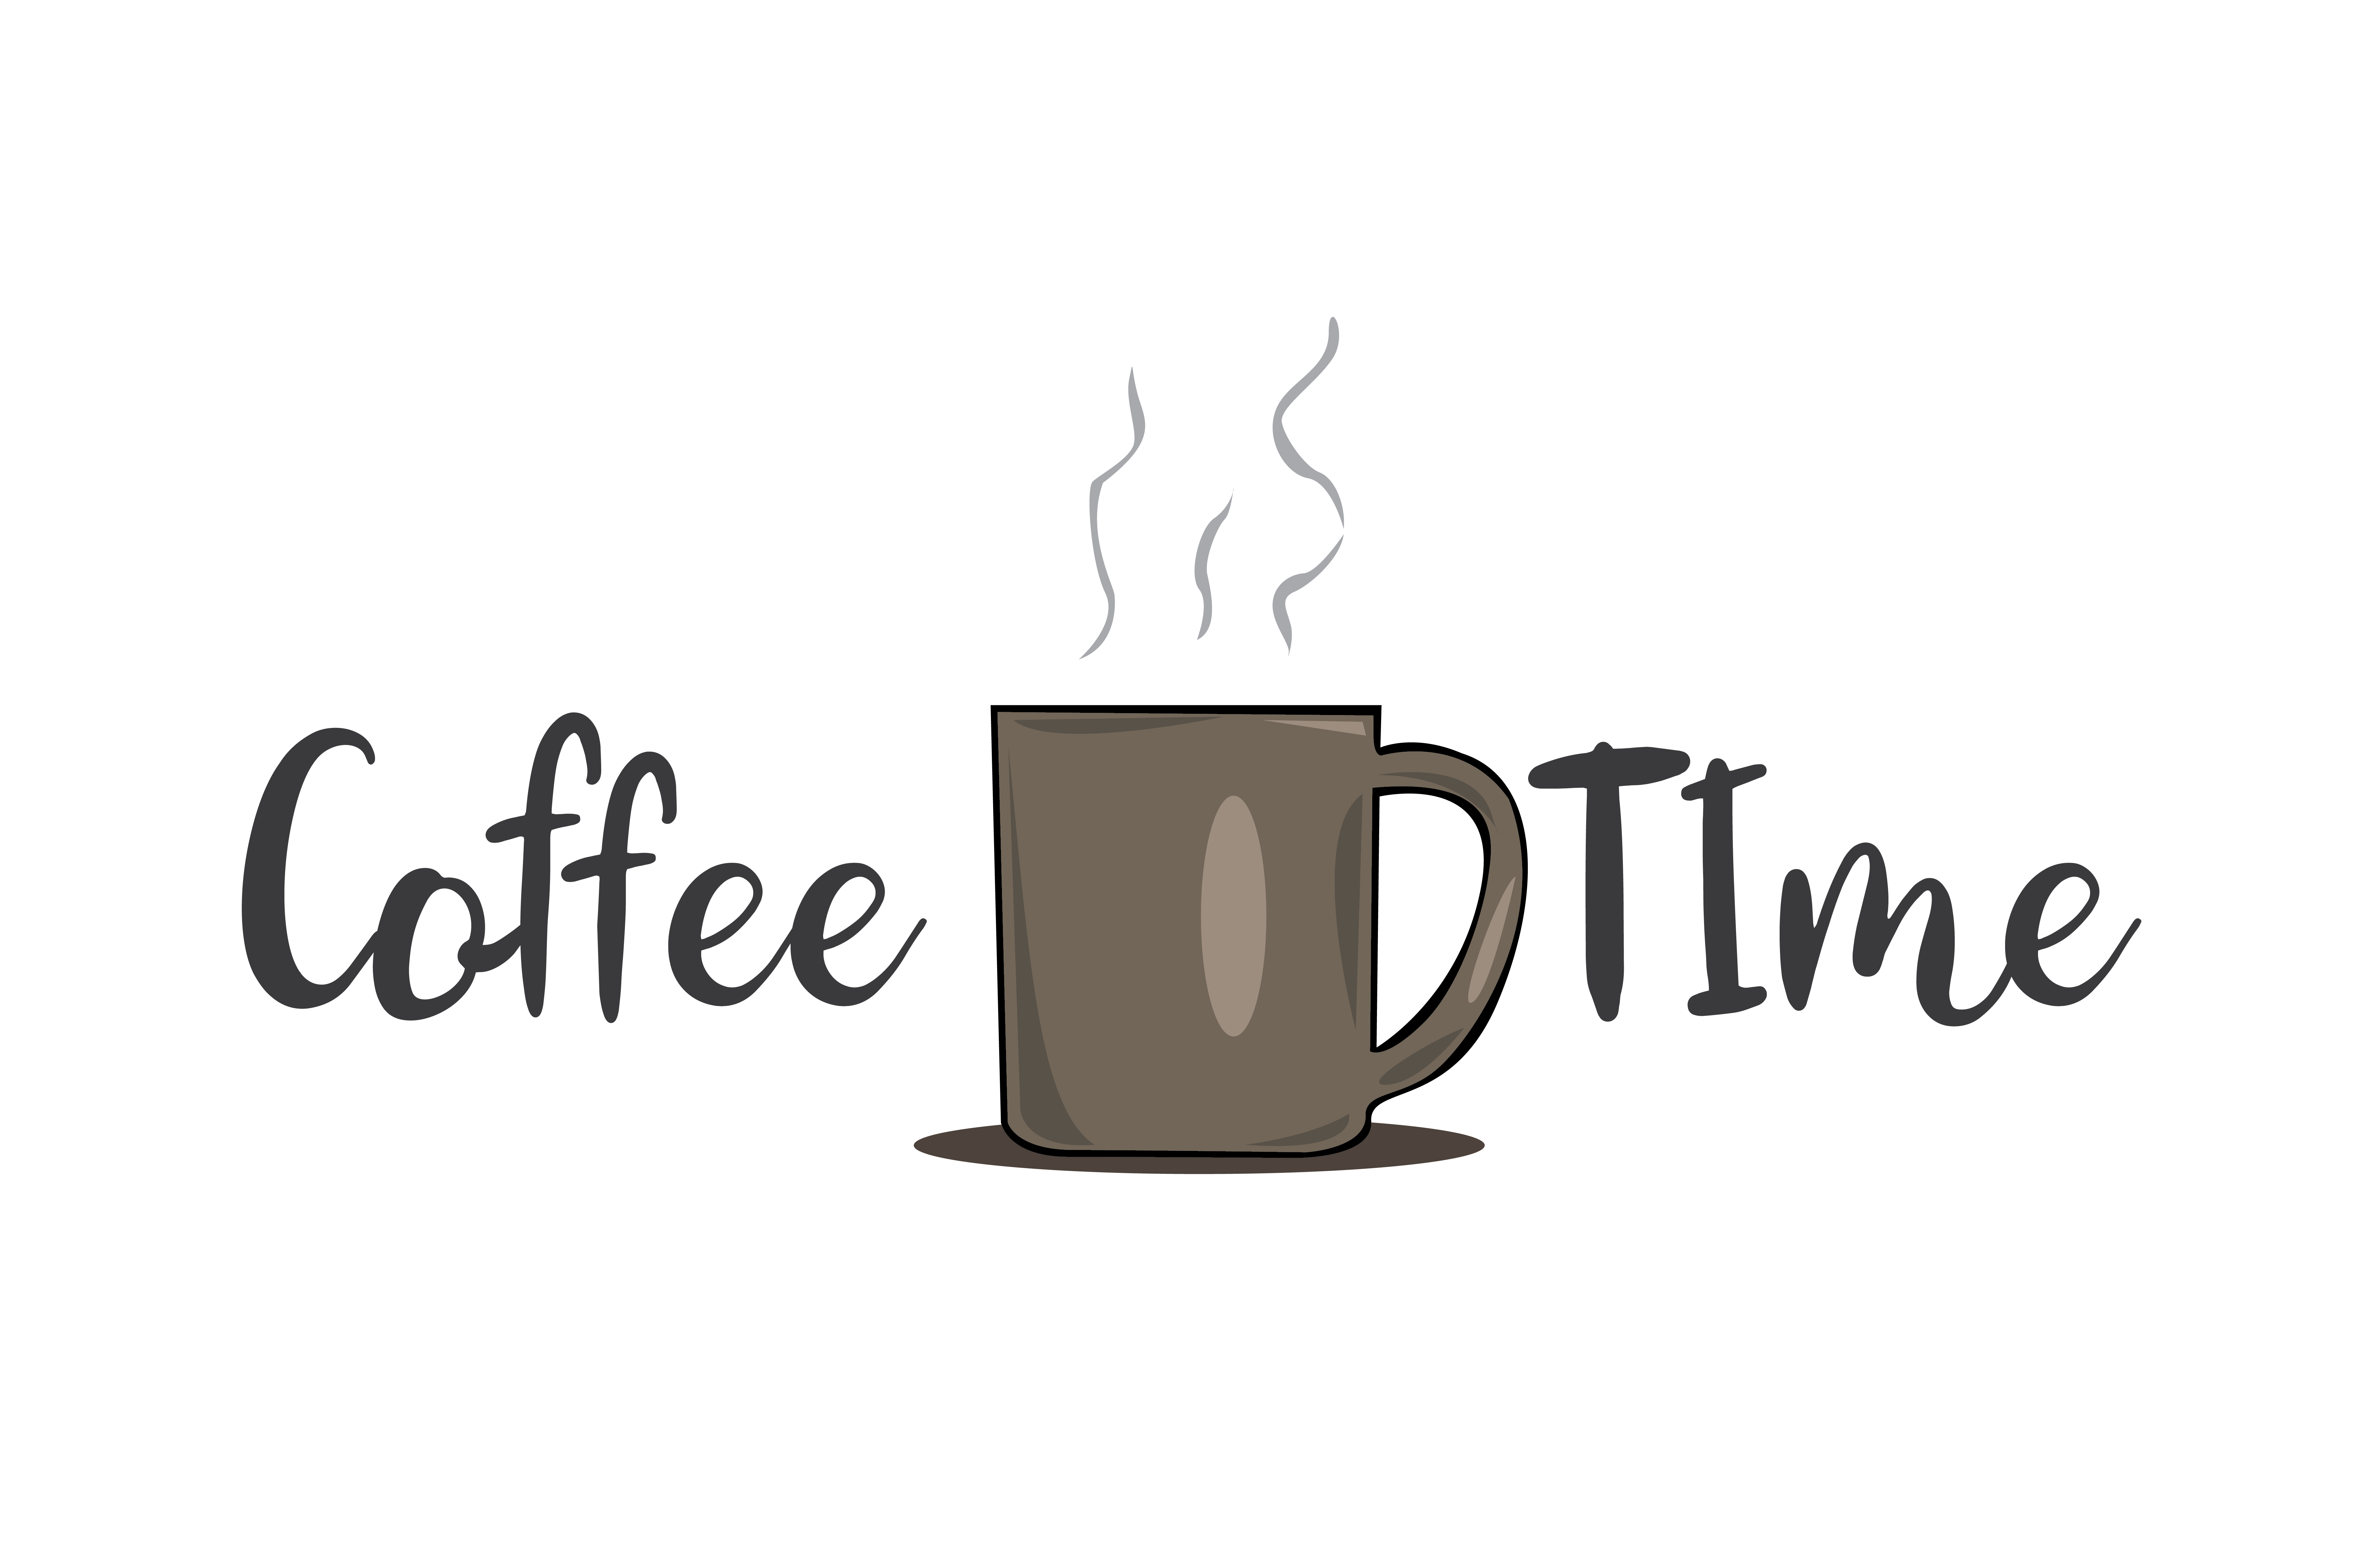 Download Free Coffee Time Grafik Von Rfg Creative Fabrica for Cricut Explore, Silhouette and other cutting machines.